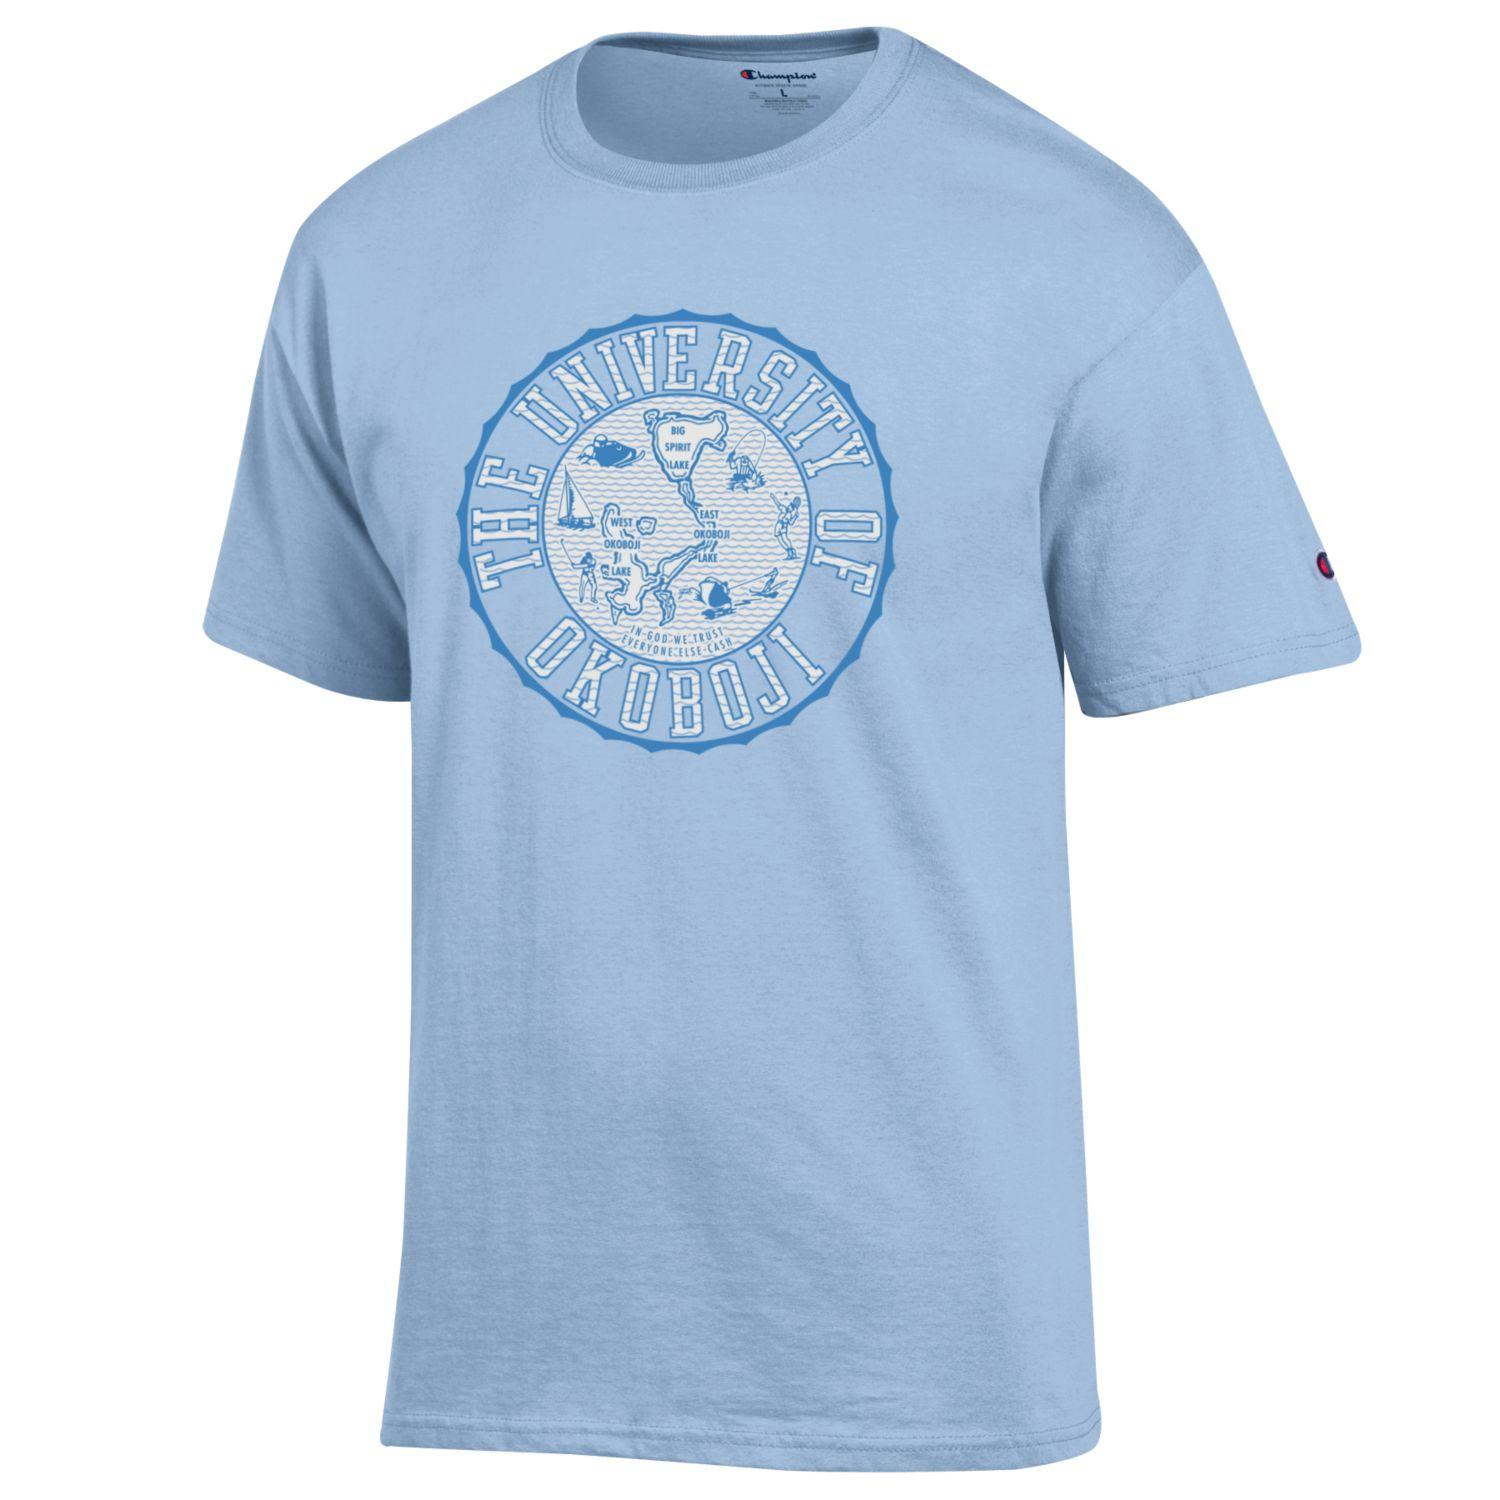 The University of Okoboji Tee - Oceanfront Blue